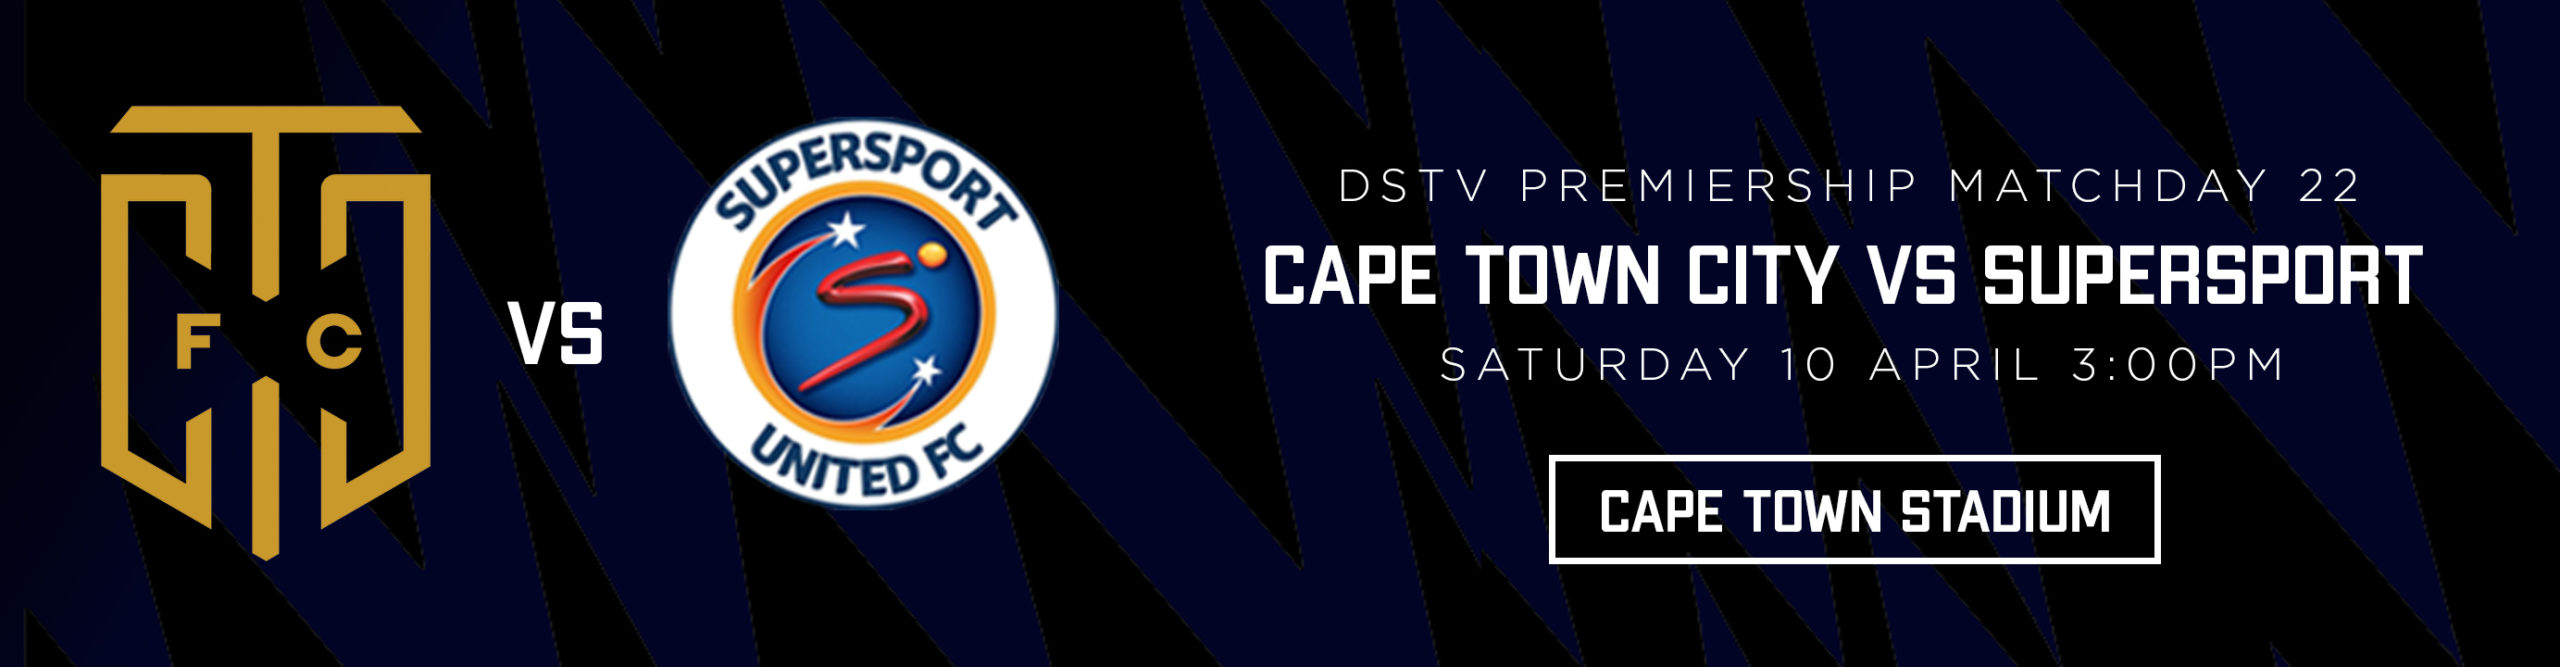 CAPE TOWN CITY VS SUPERSPORT